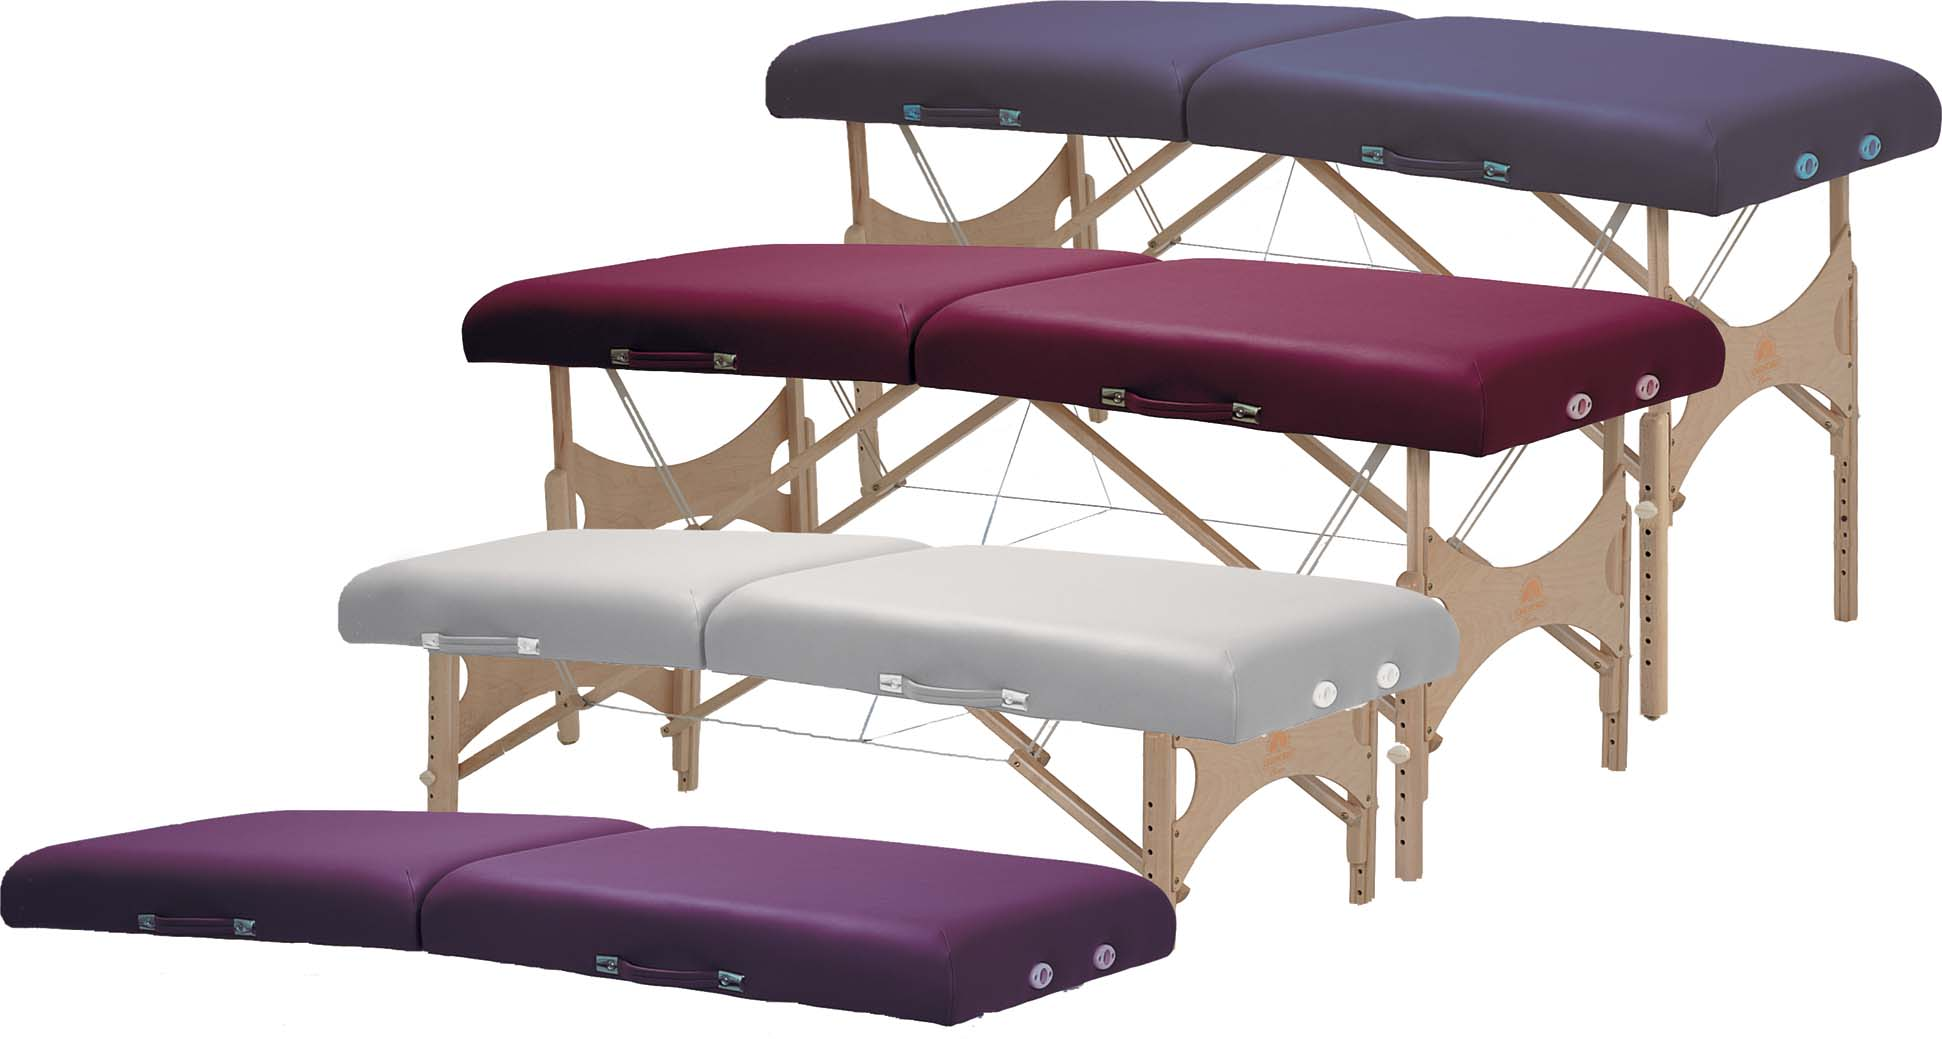 Massage Table Rentals at Different Heights